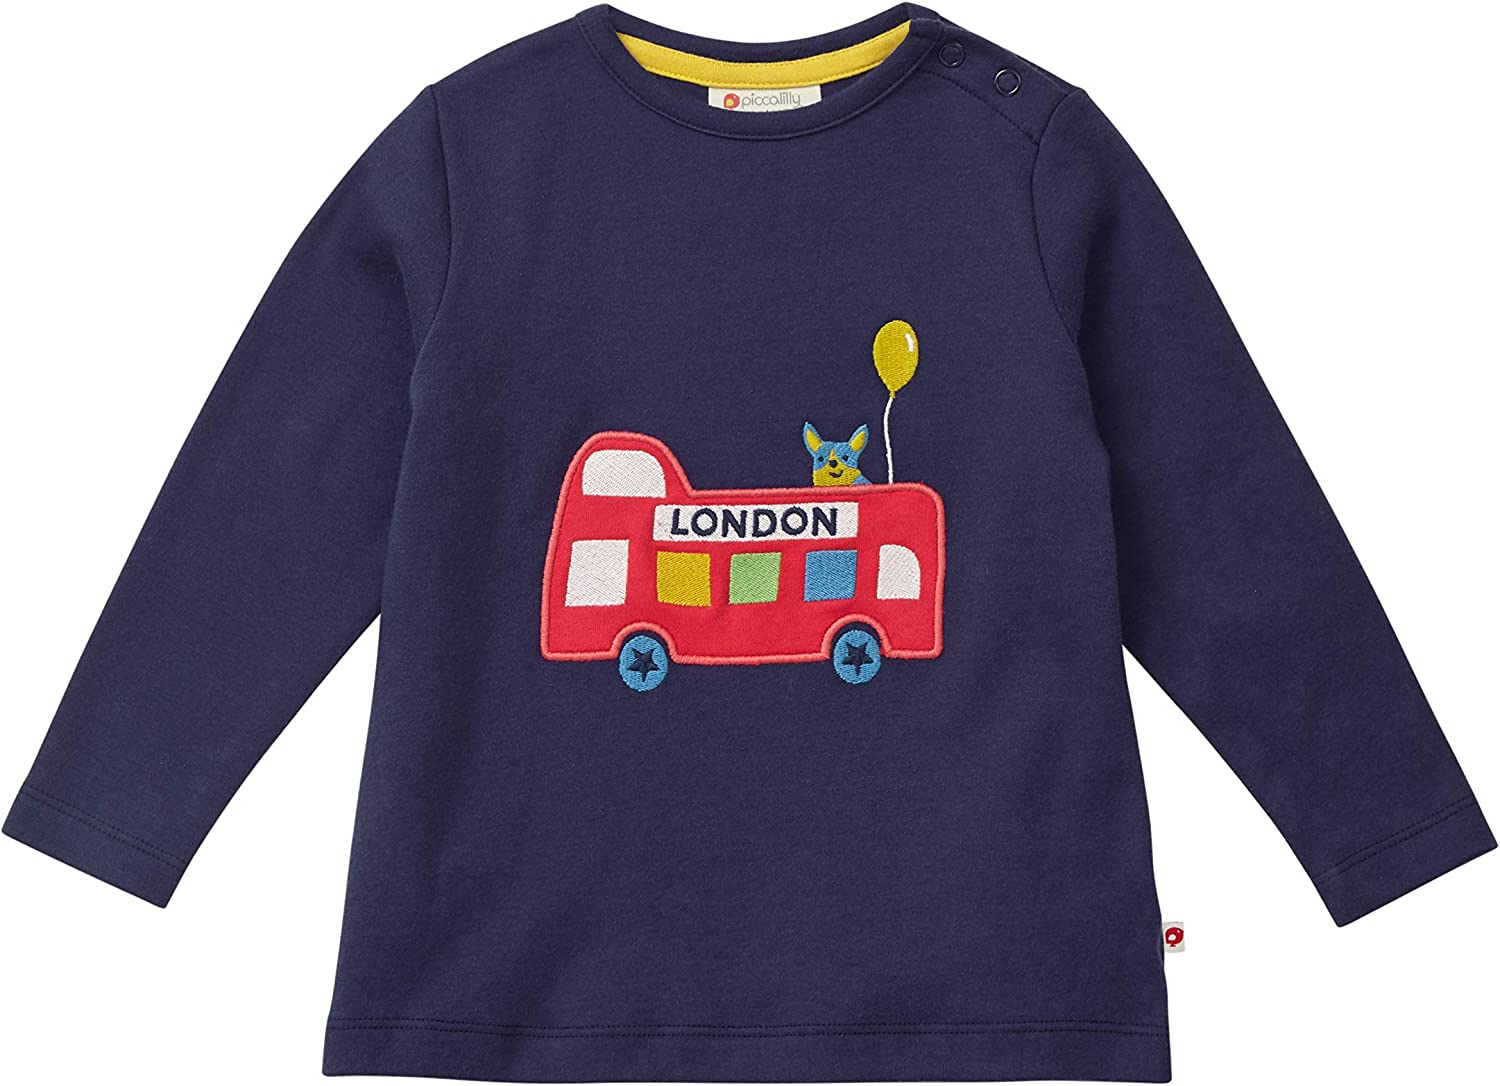 Navy Blue with Long Sleeves Limited Edition Souvenier Piccalilly Fun London Bus Top for Kids